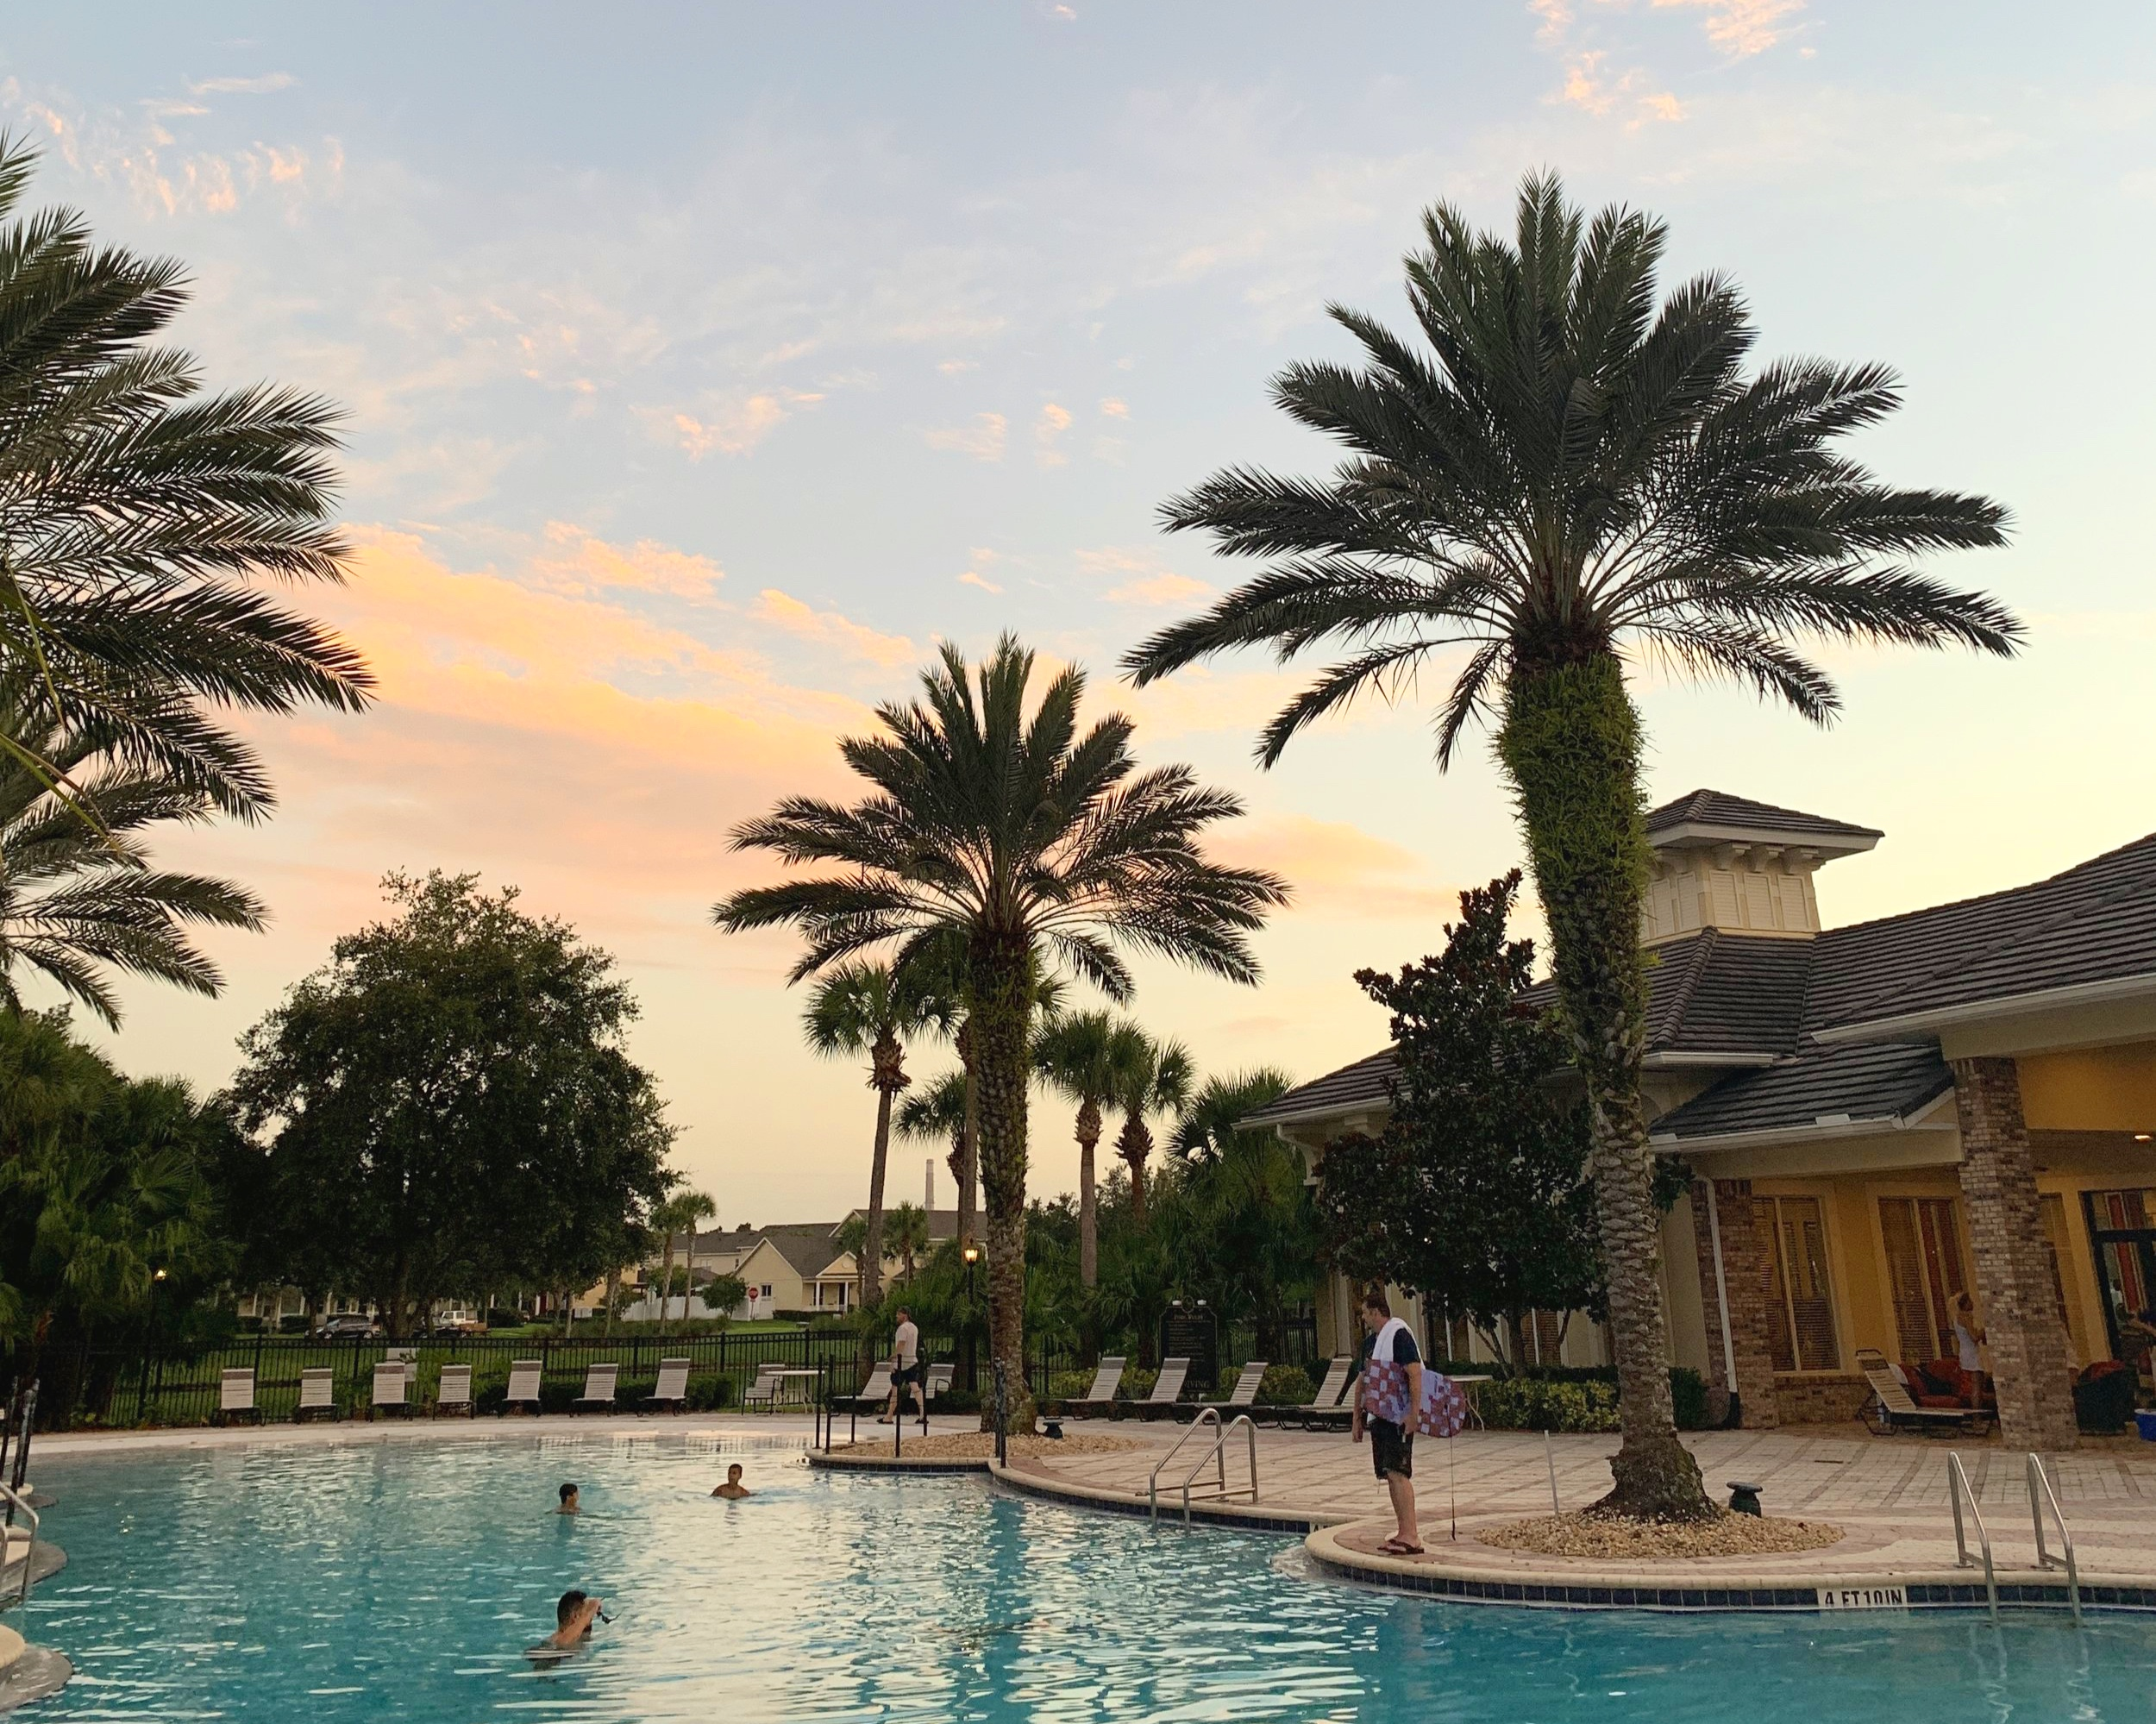 Our neighborhood has an amazing pool just a short walk away. Seriously pinch us…